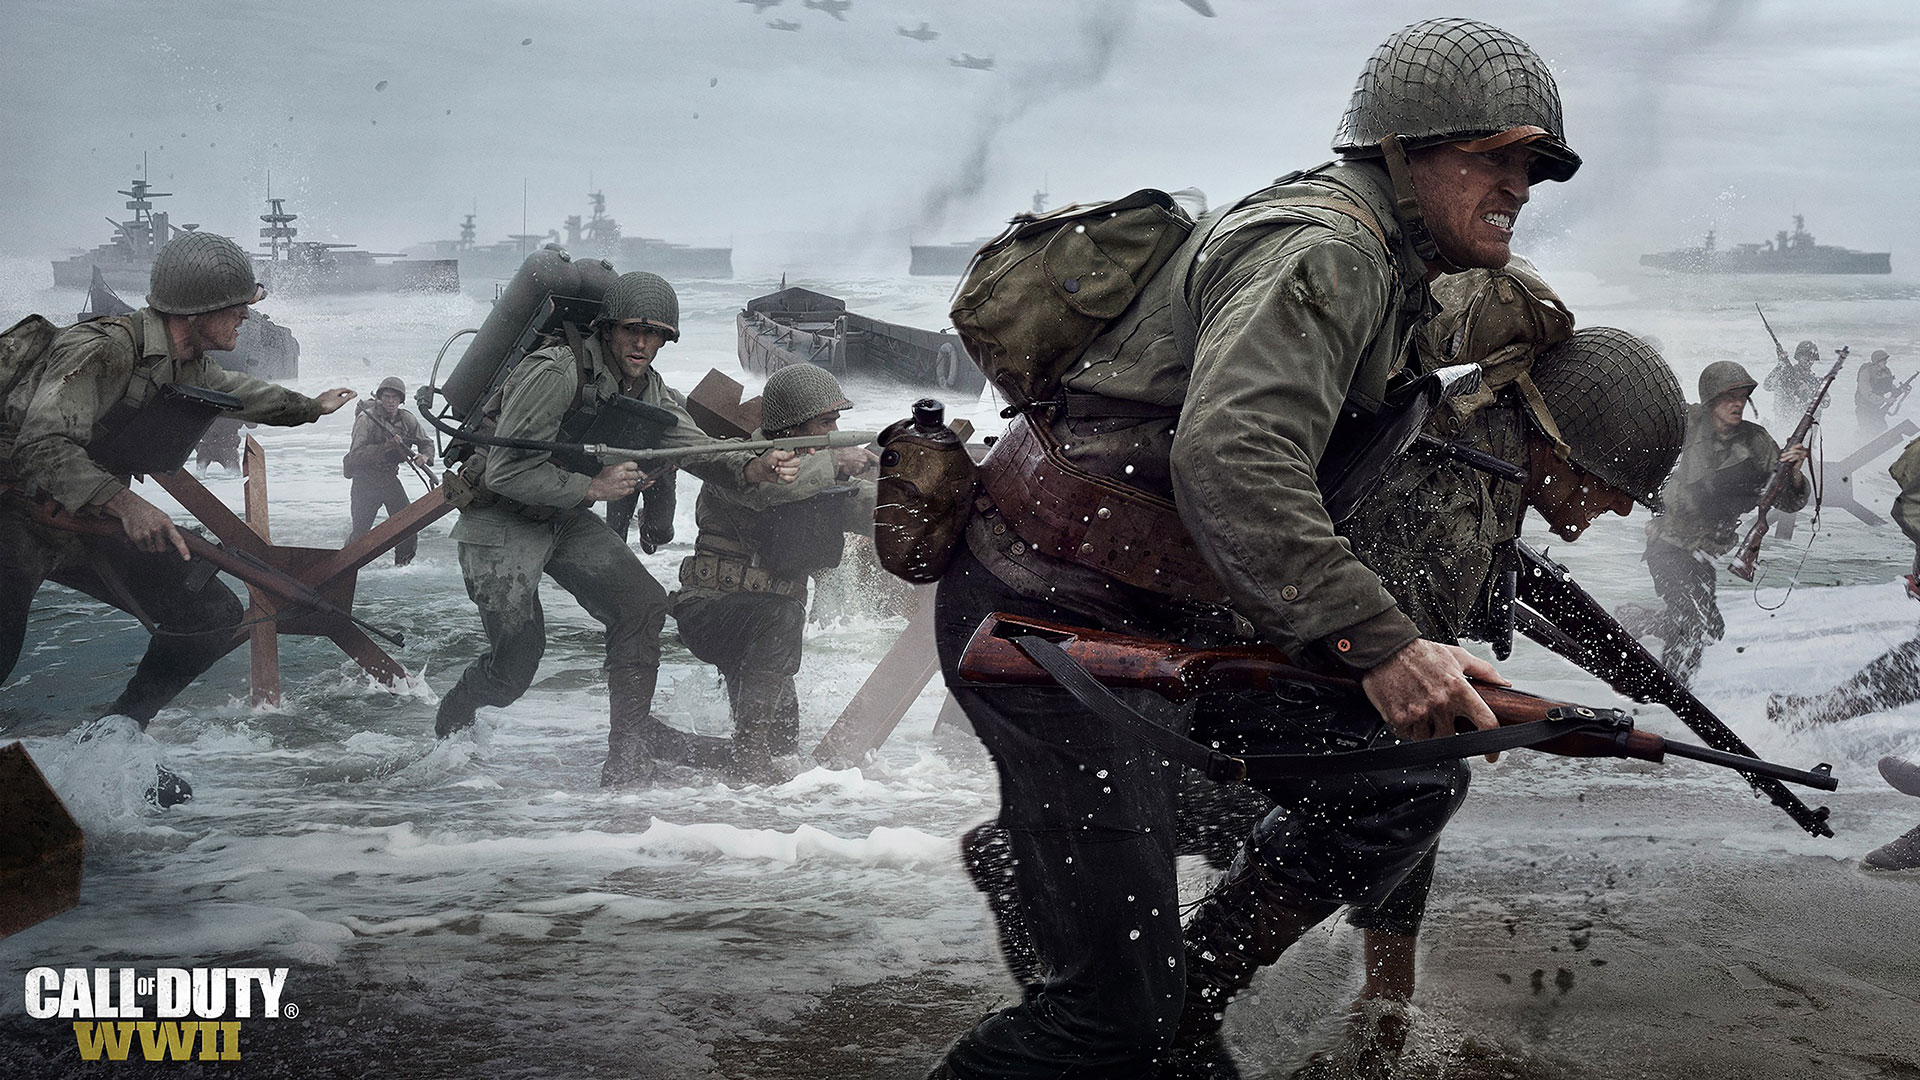 Call of duty wwii wallpapers in ultra hd 4k gameranx - Cod ww2 4k pc ...